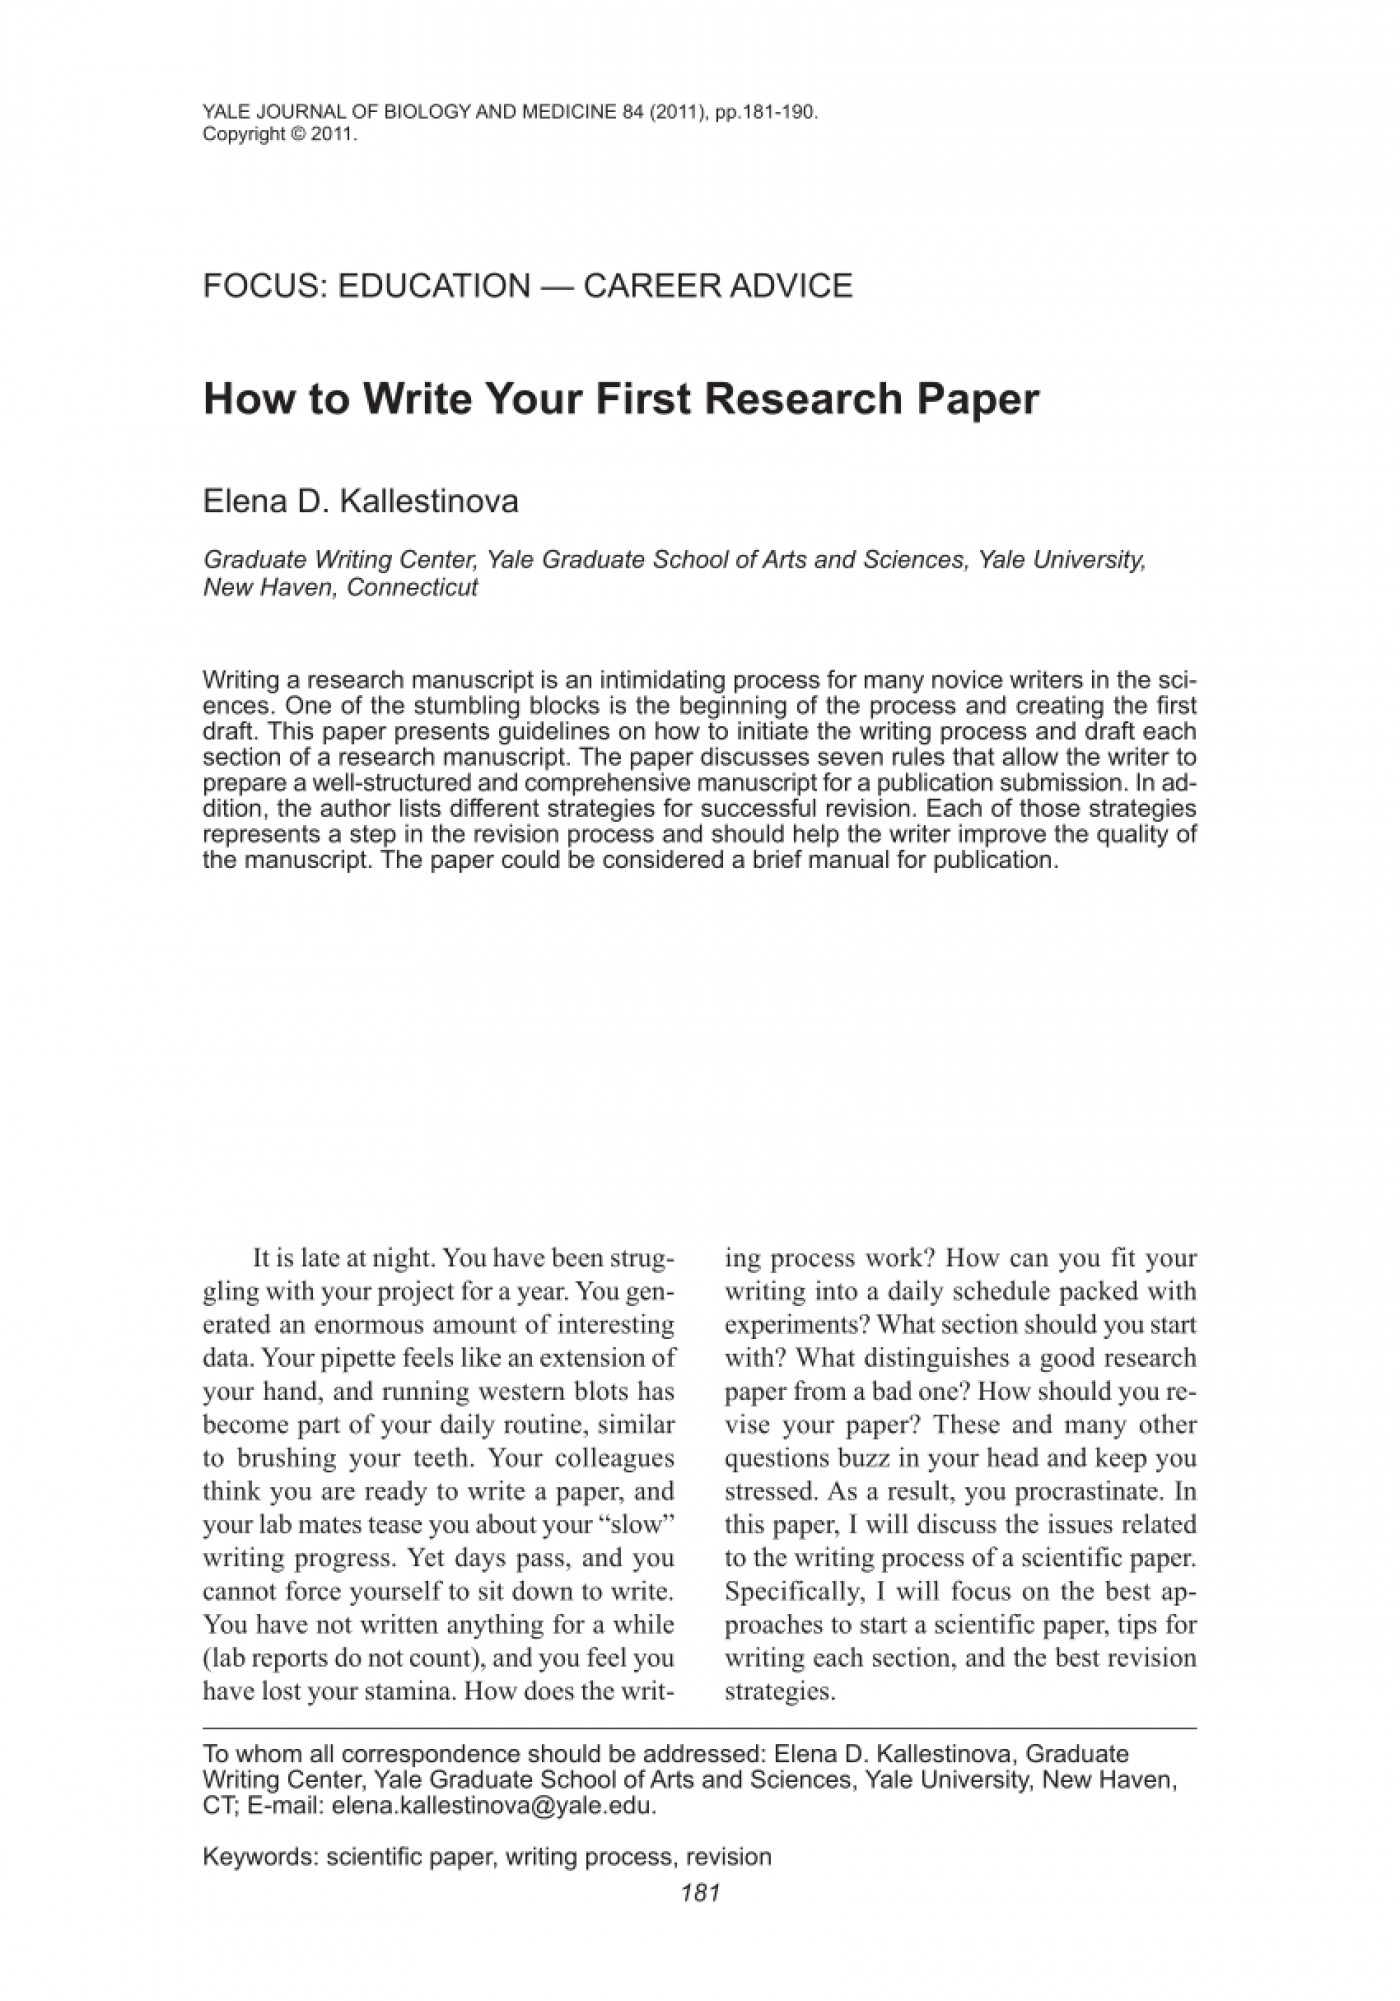 003 How To Write Research Paper Frightening Abstract For Sample Proposal A Summary Of Your 1400